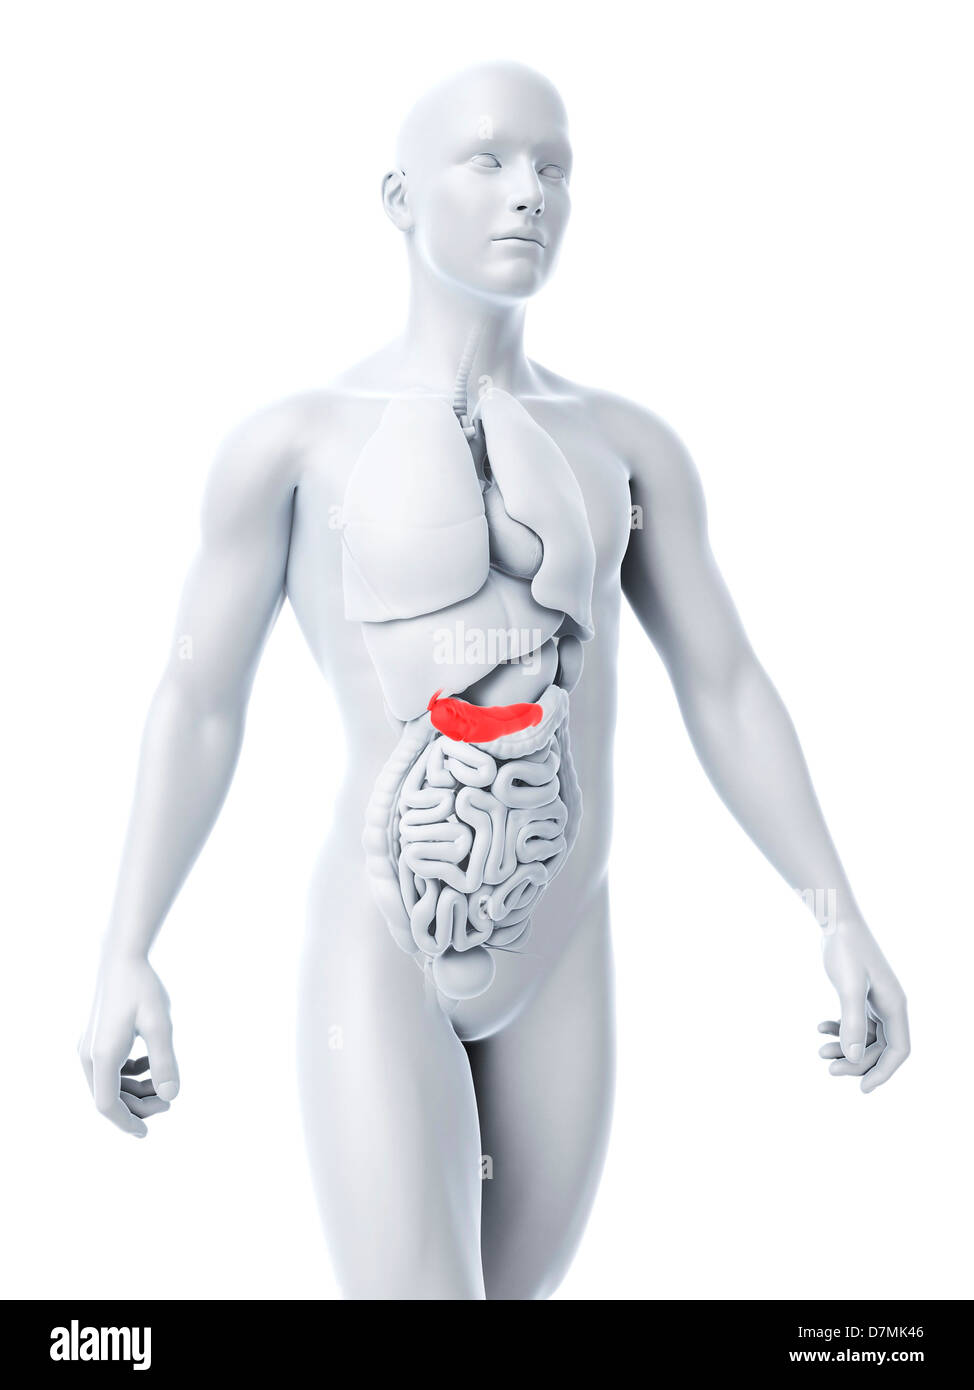 Pancreas And Human And Illustration Stockfotos & Pancreas And Human ...